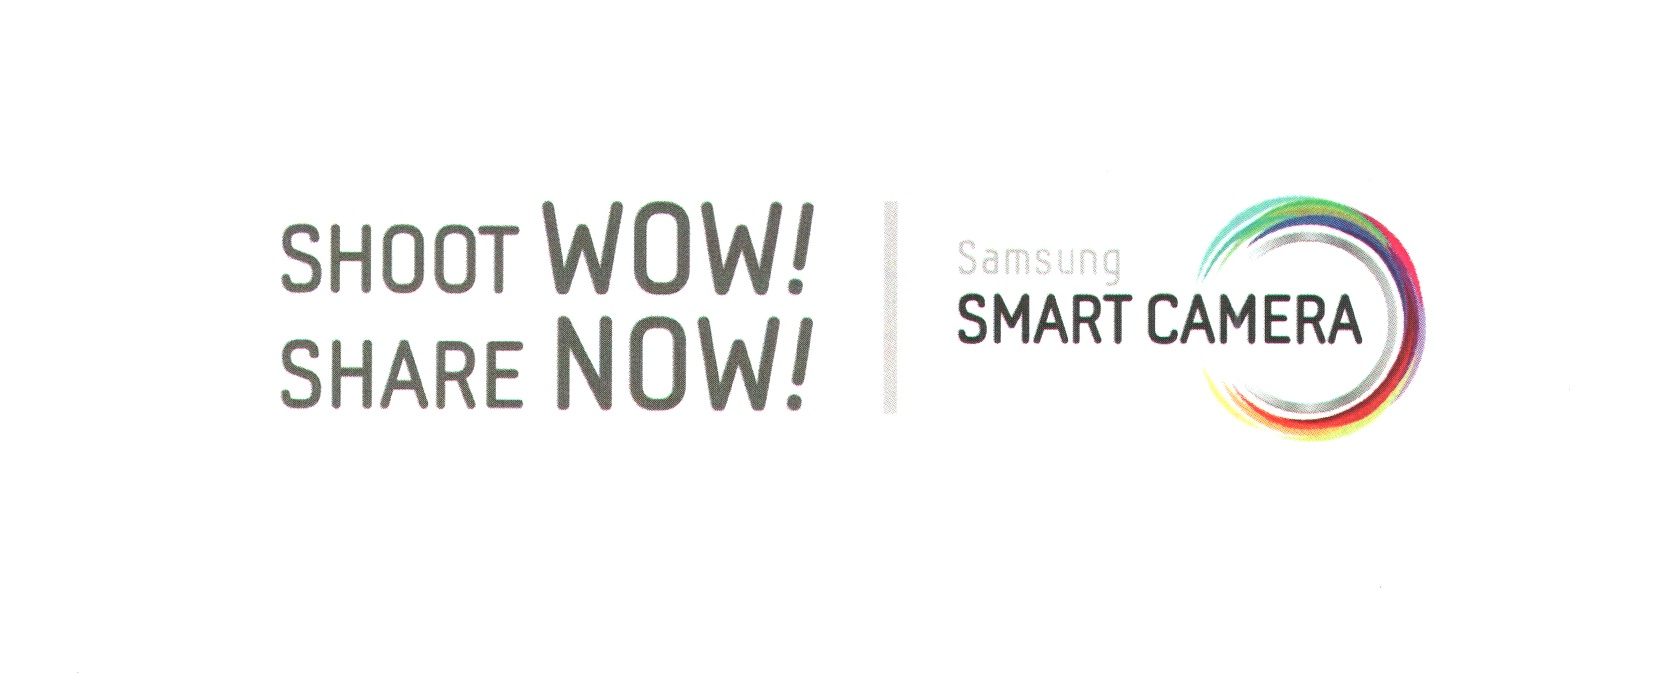 SHOOT WOW! SHARE NOW! SAMSUNG SMART CAMERA by Samsung ...